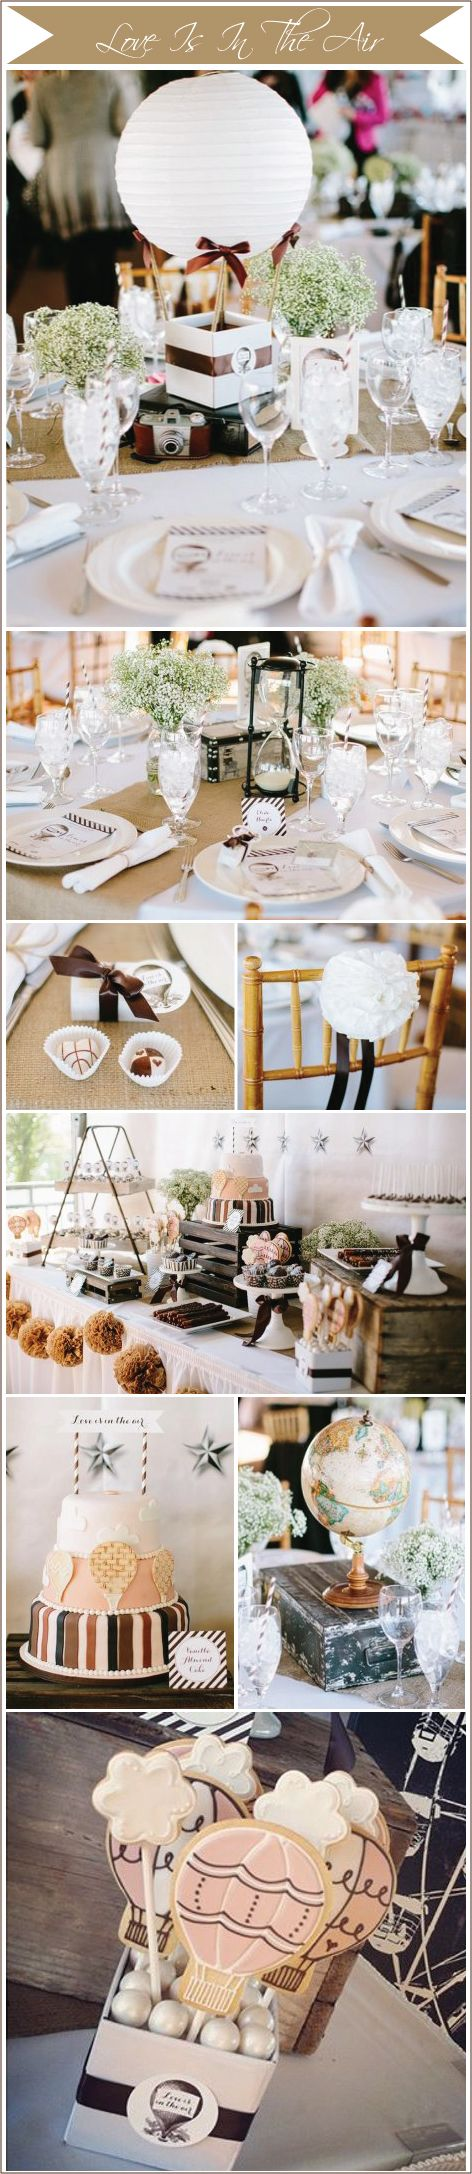 Operation-Shower-Love-Is-In-The-Air - table anchored hot air balloon centerpiece instructions